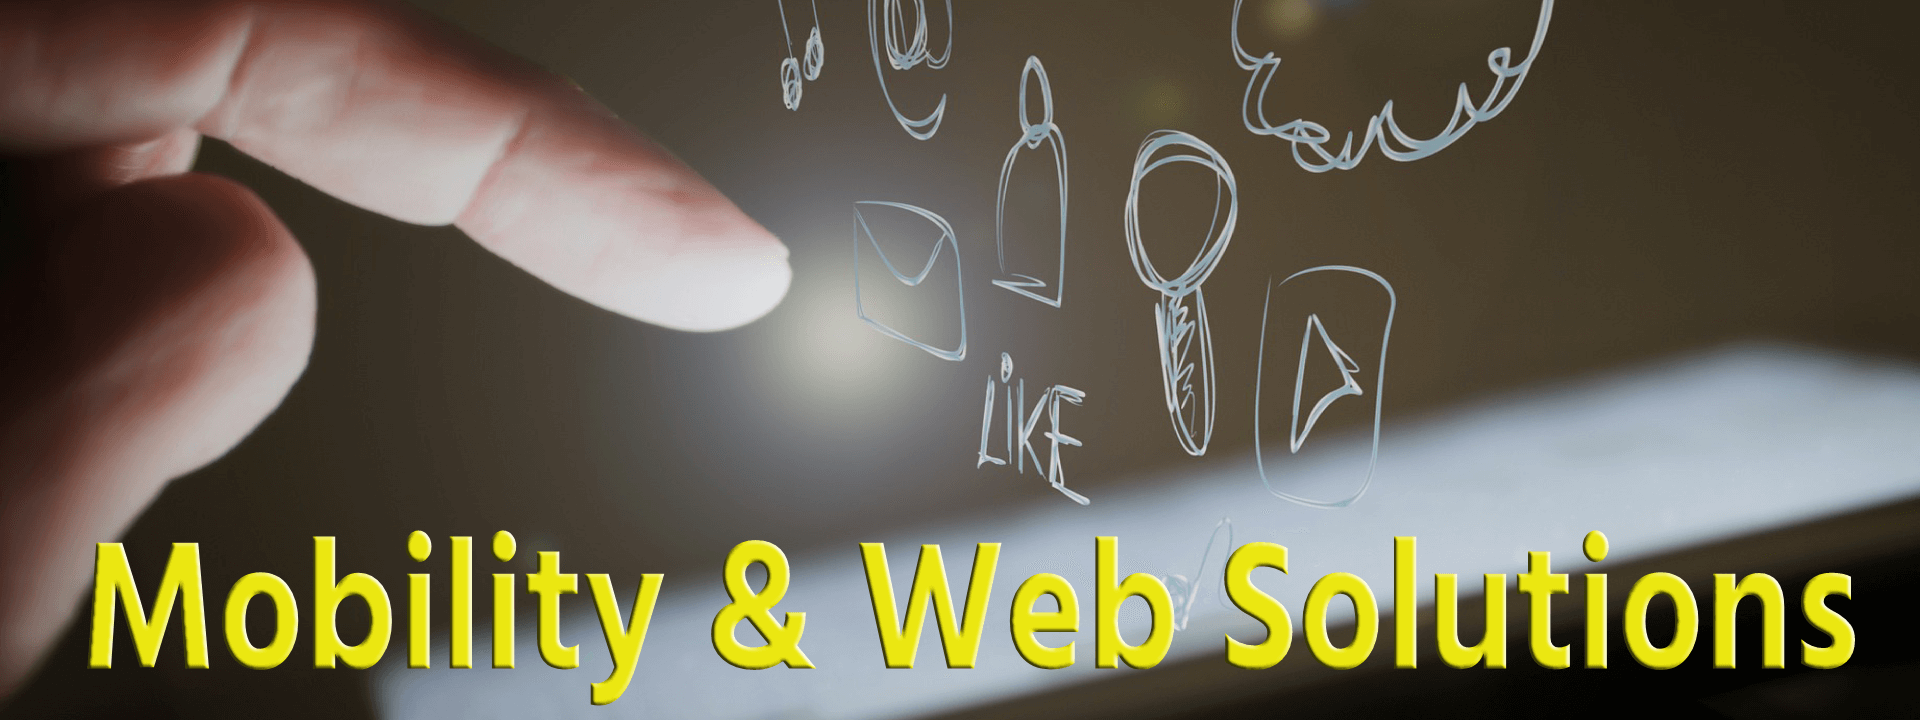 mobility and web